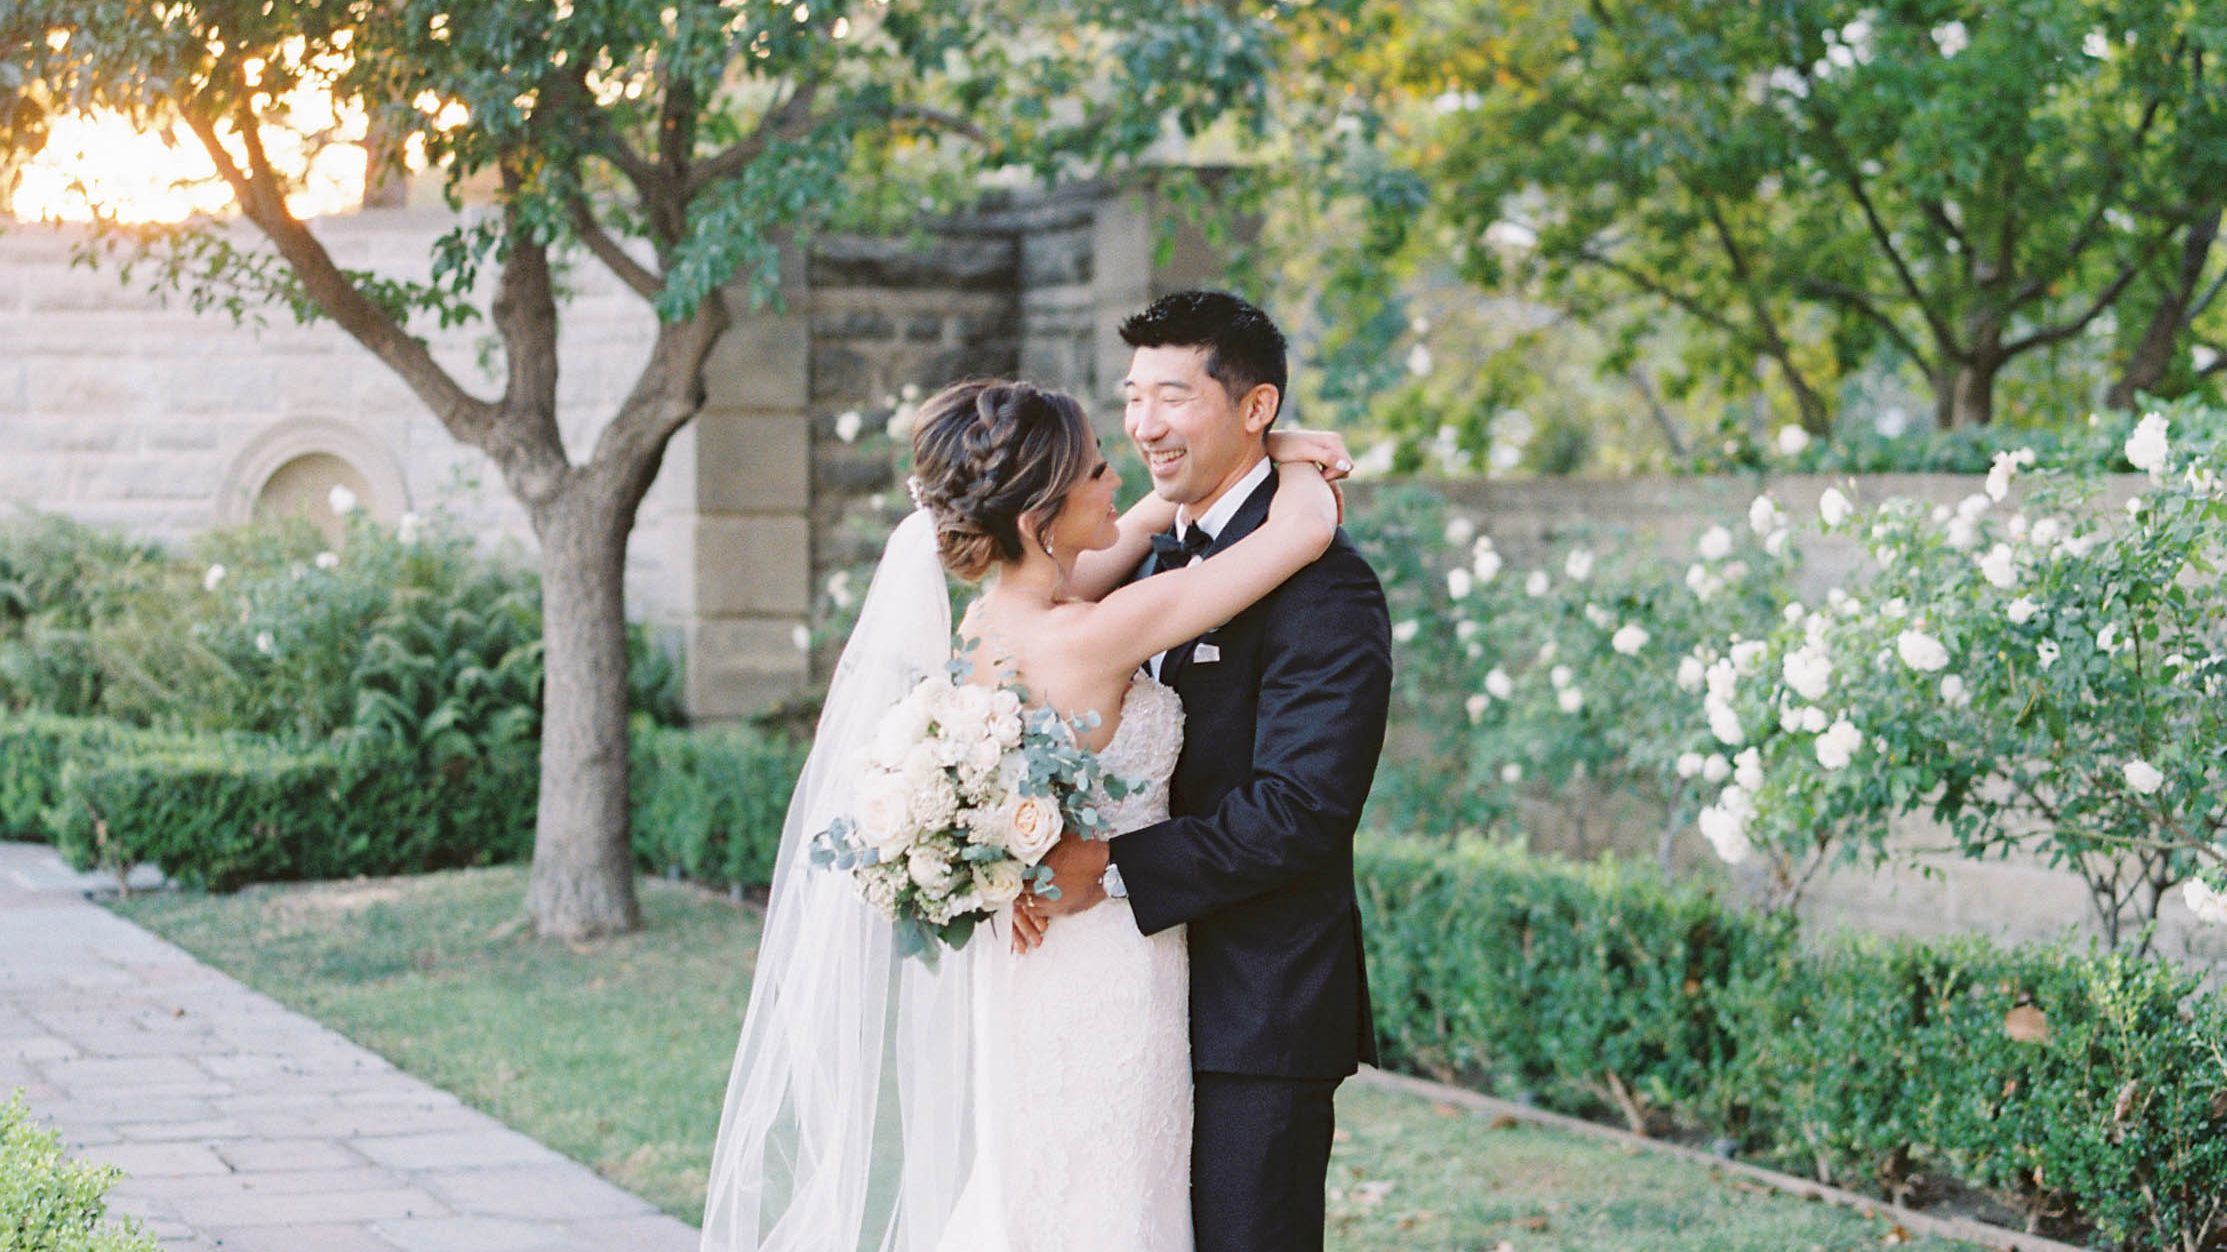 Adam + Jinny | Beverly Hills, California | Greystone Mansion